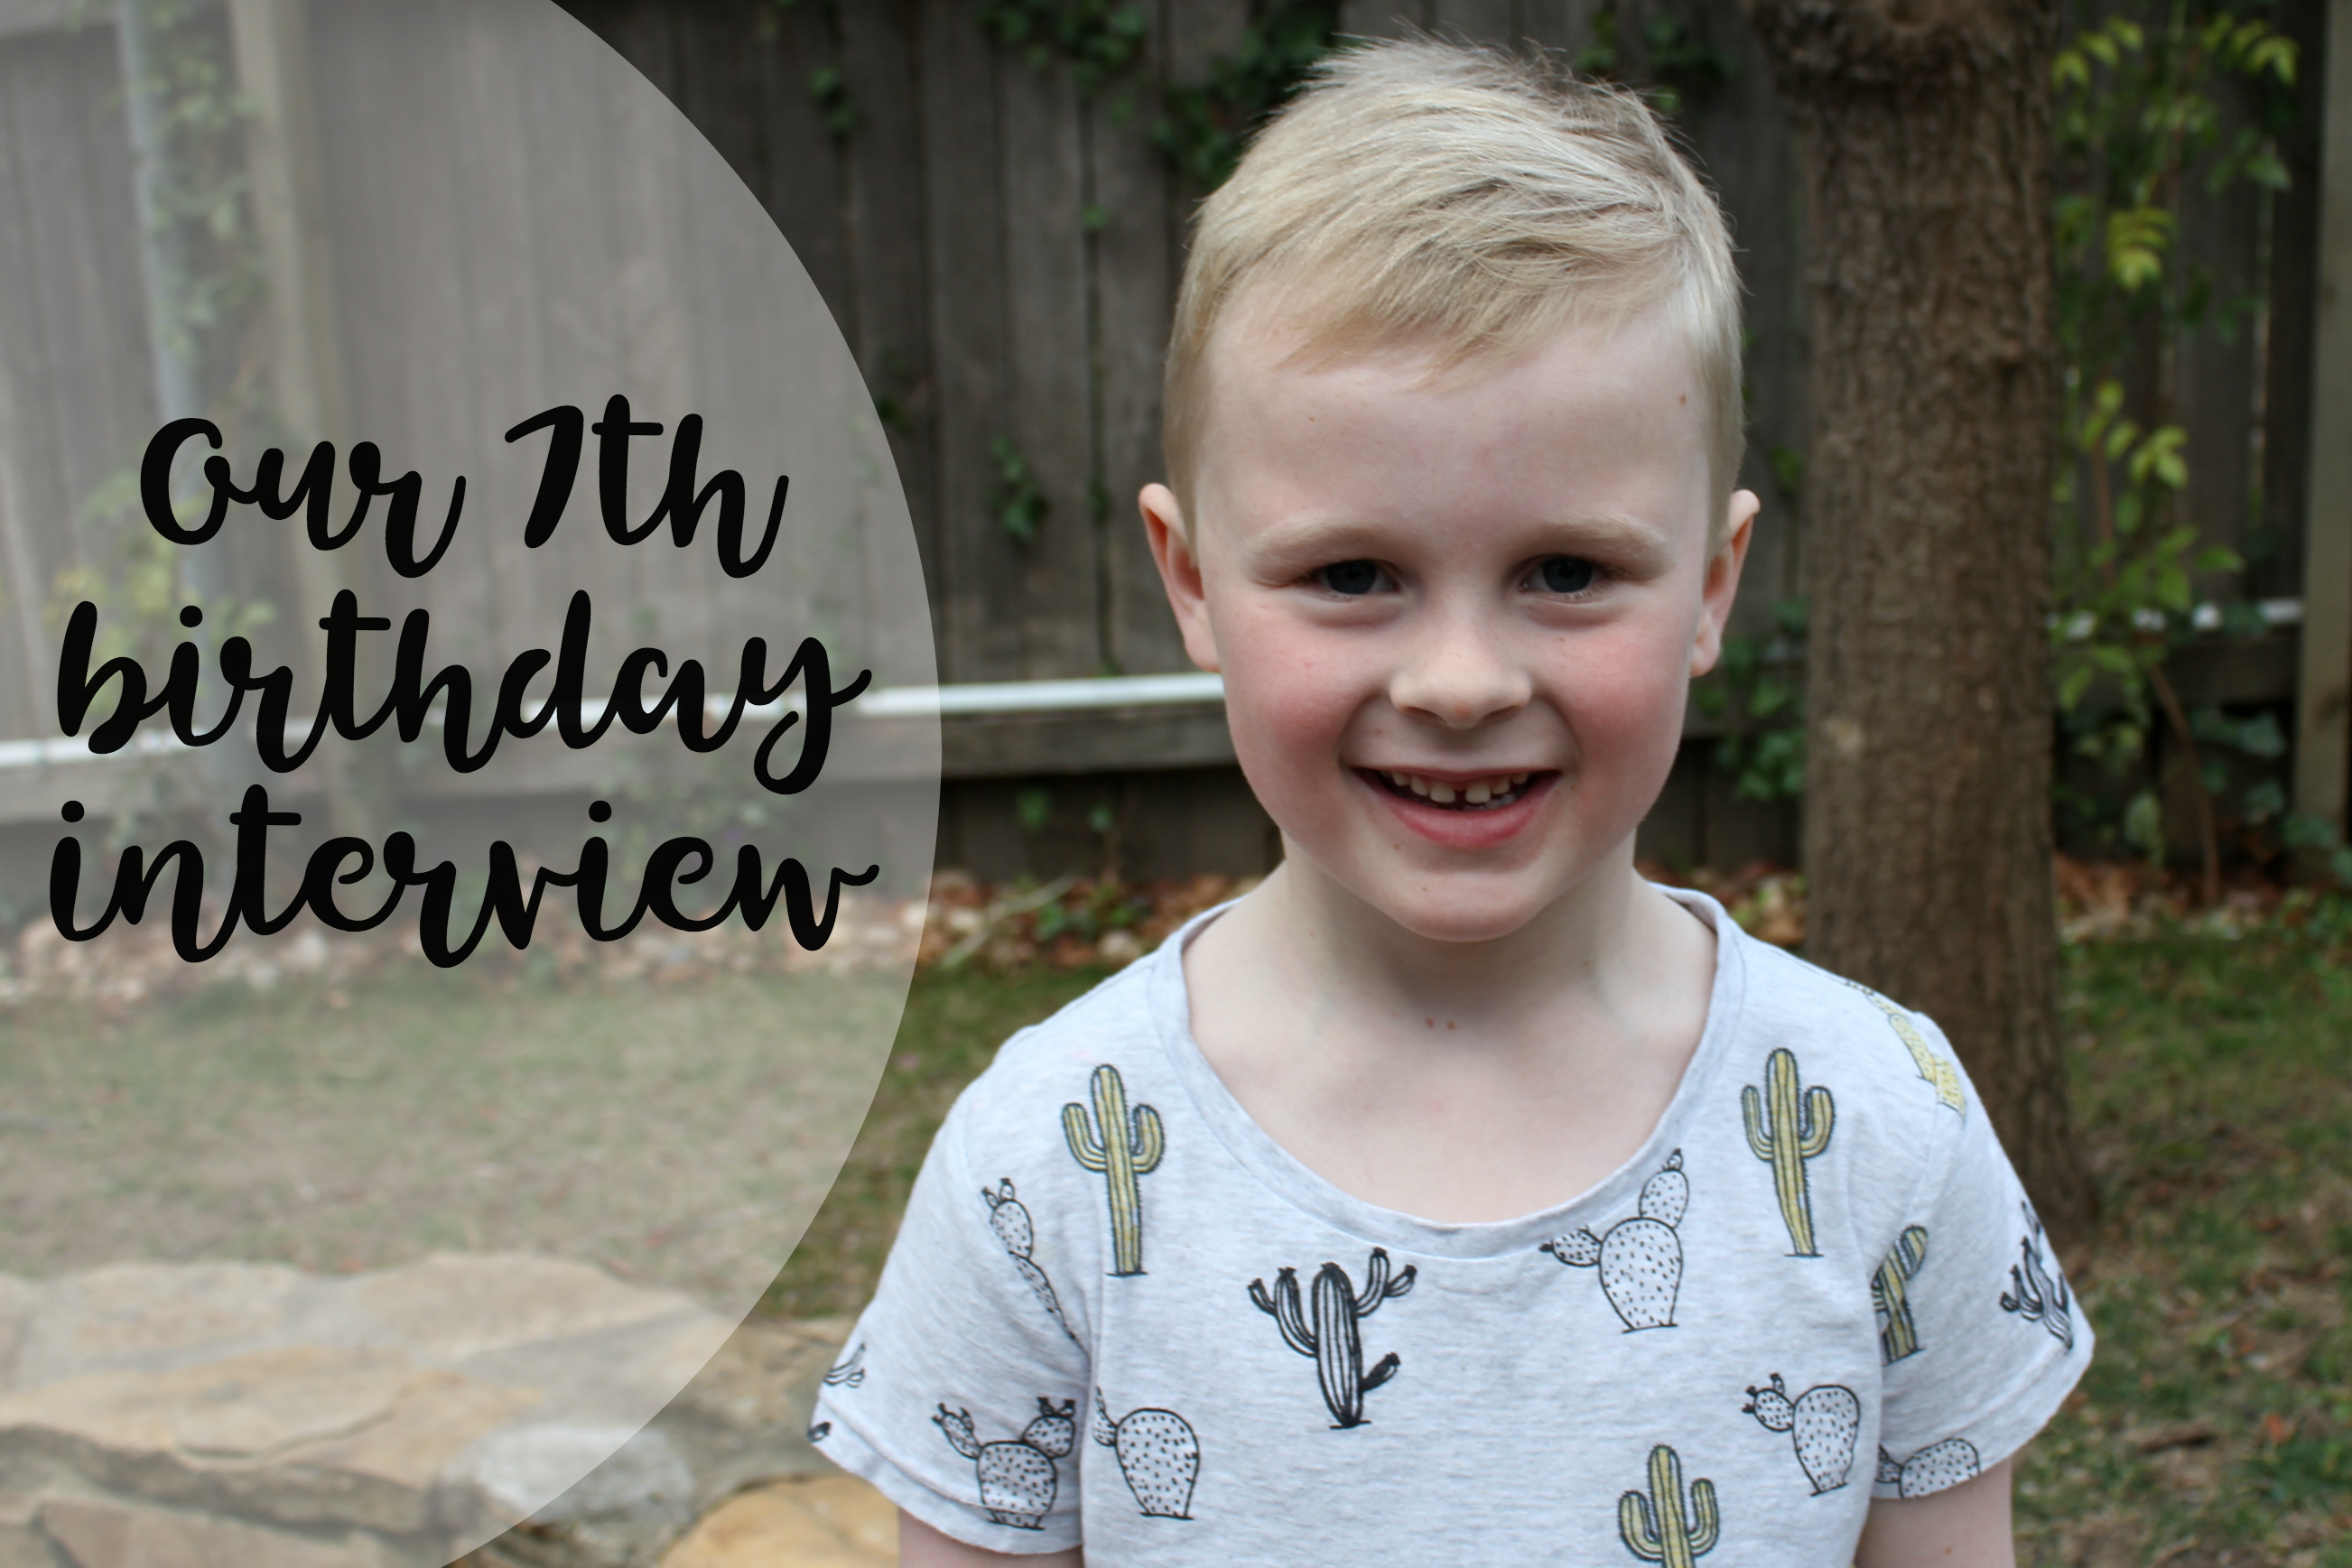 7th birthday interview